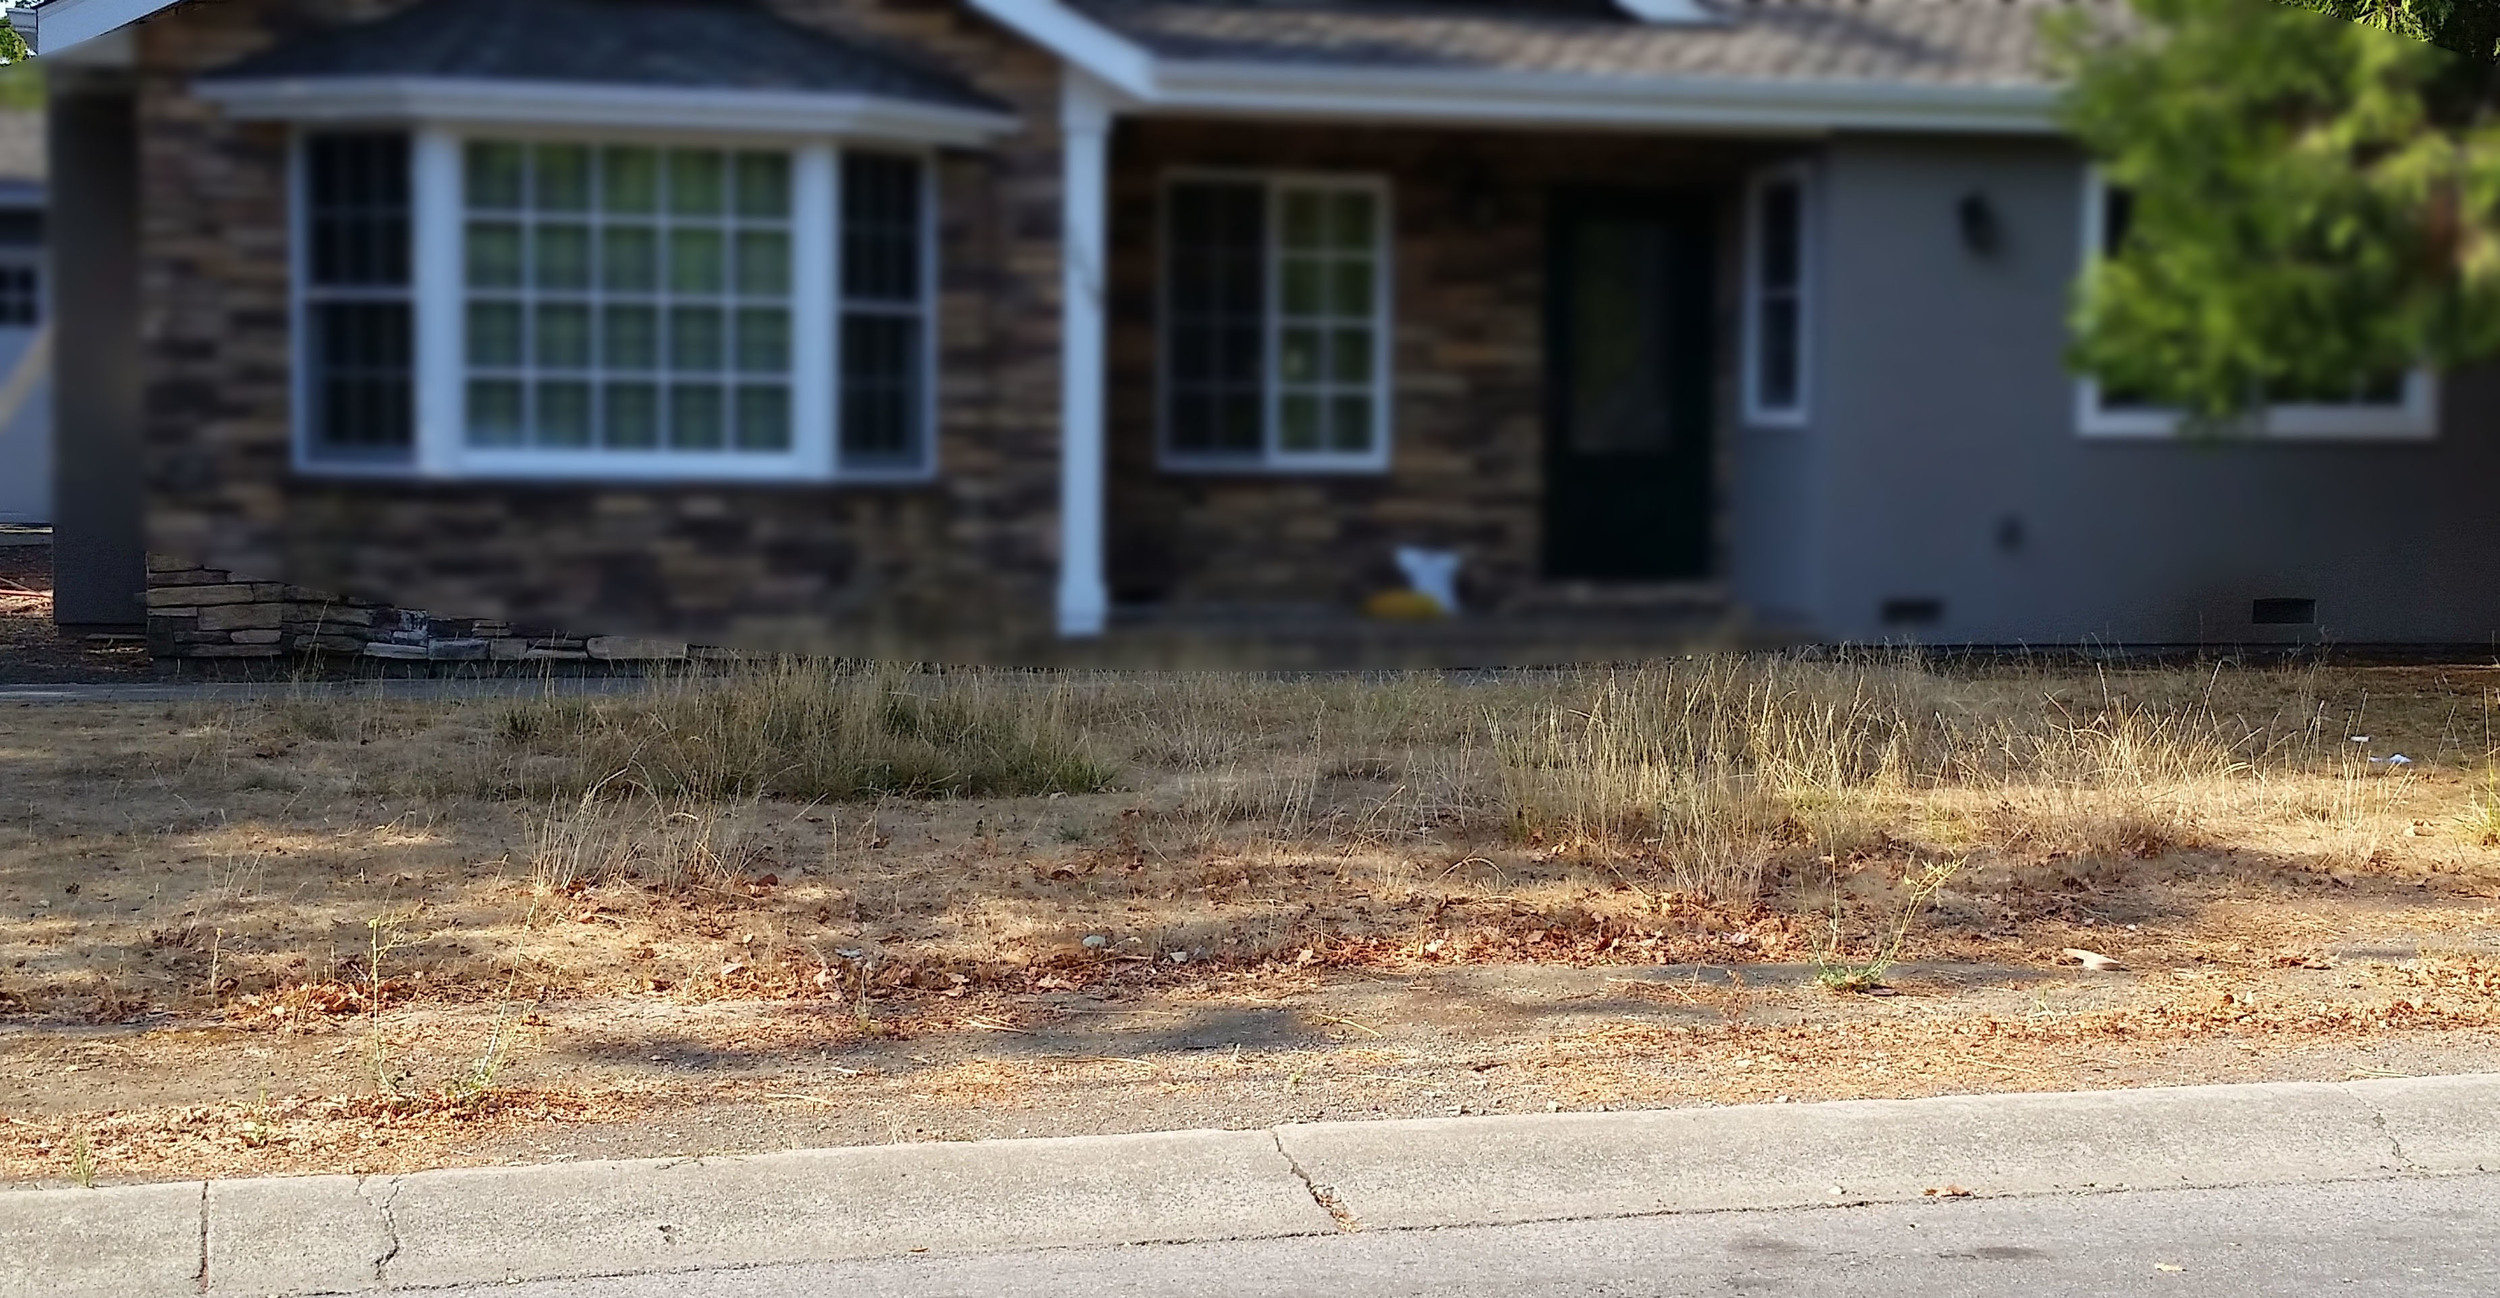 An otherwise beautifully maintained (and recently expanded) home with a neglected front yard (image blurred).